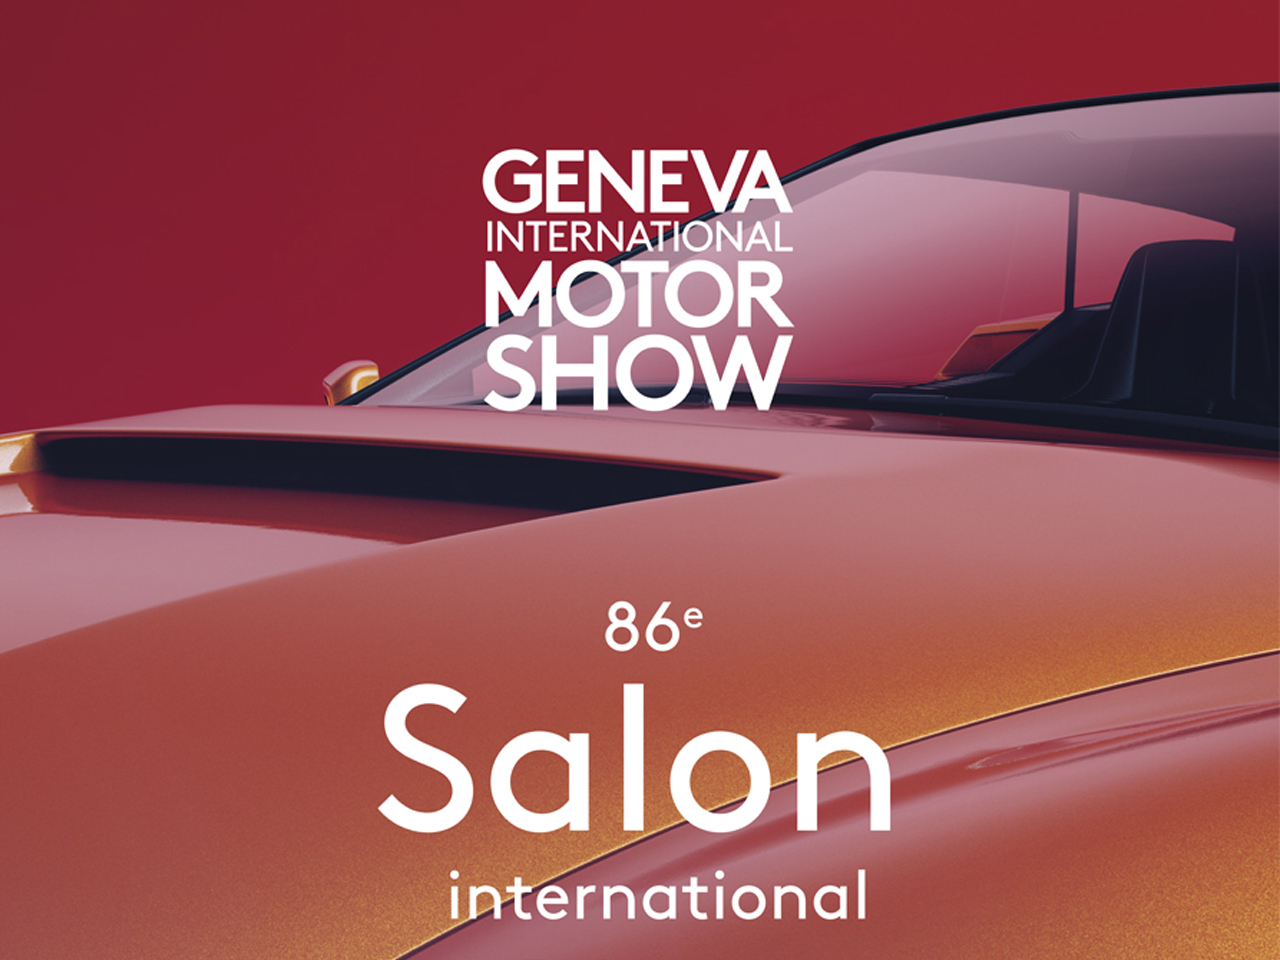 Le Salon International de l'Automobile de Genève